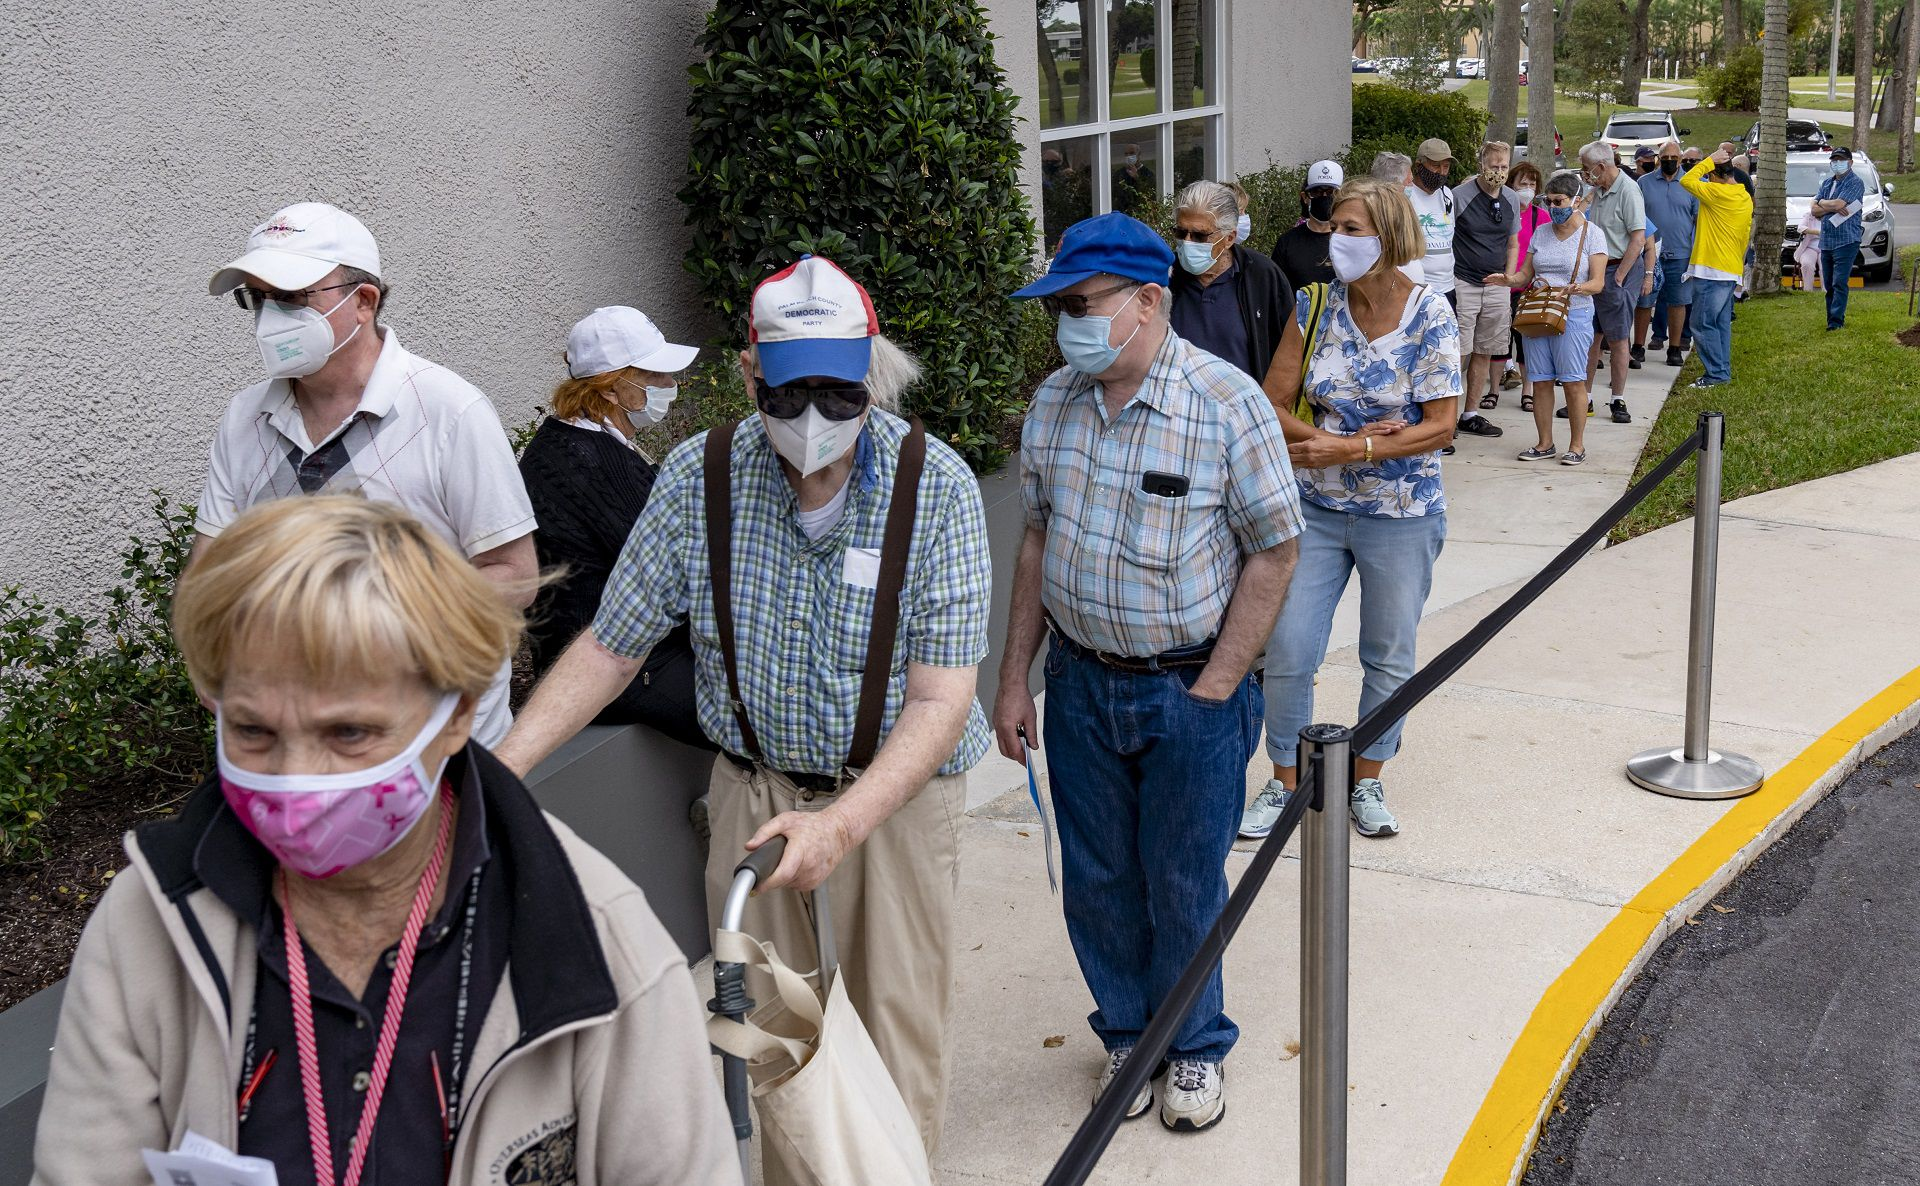 Seniors stand in line to make an appointment to receive the Moderna COVID-19 vaccine outside the King's Point clubhouse in Delray Beach, Florida on December 30, 2020. (Greg Lovett/The Palm Beach Post)/The Palm Beach Post via AP) /The Palm Beach Post via AP)